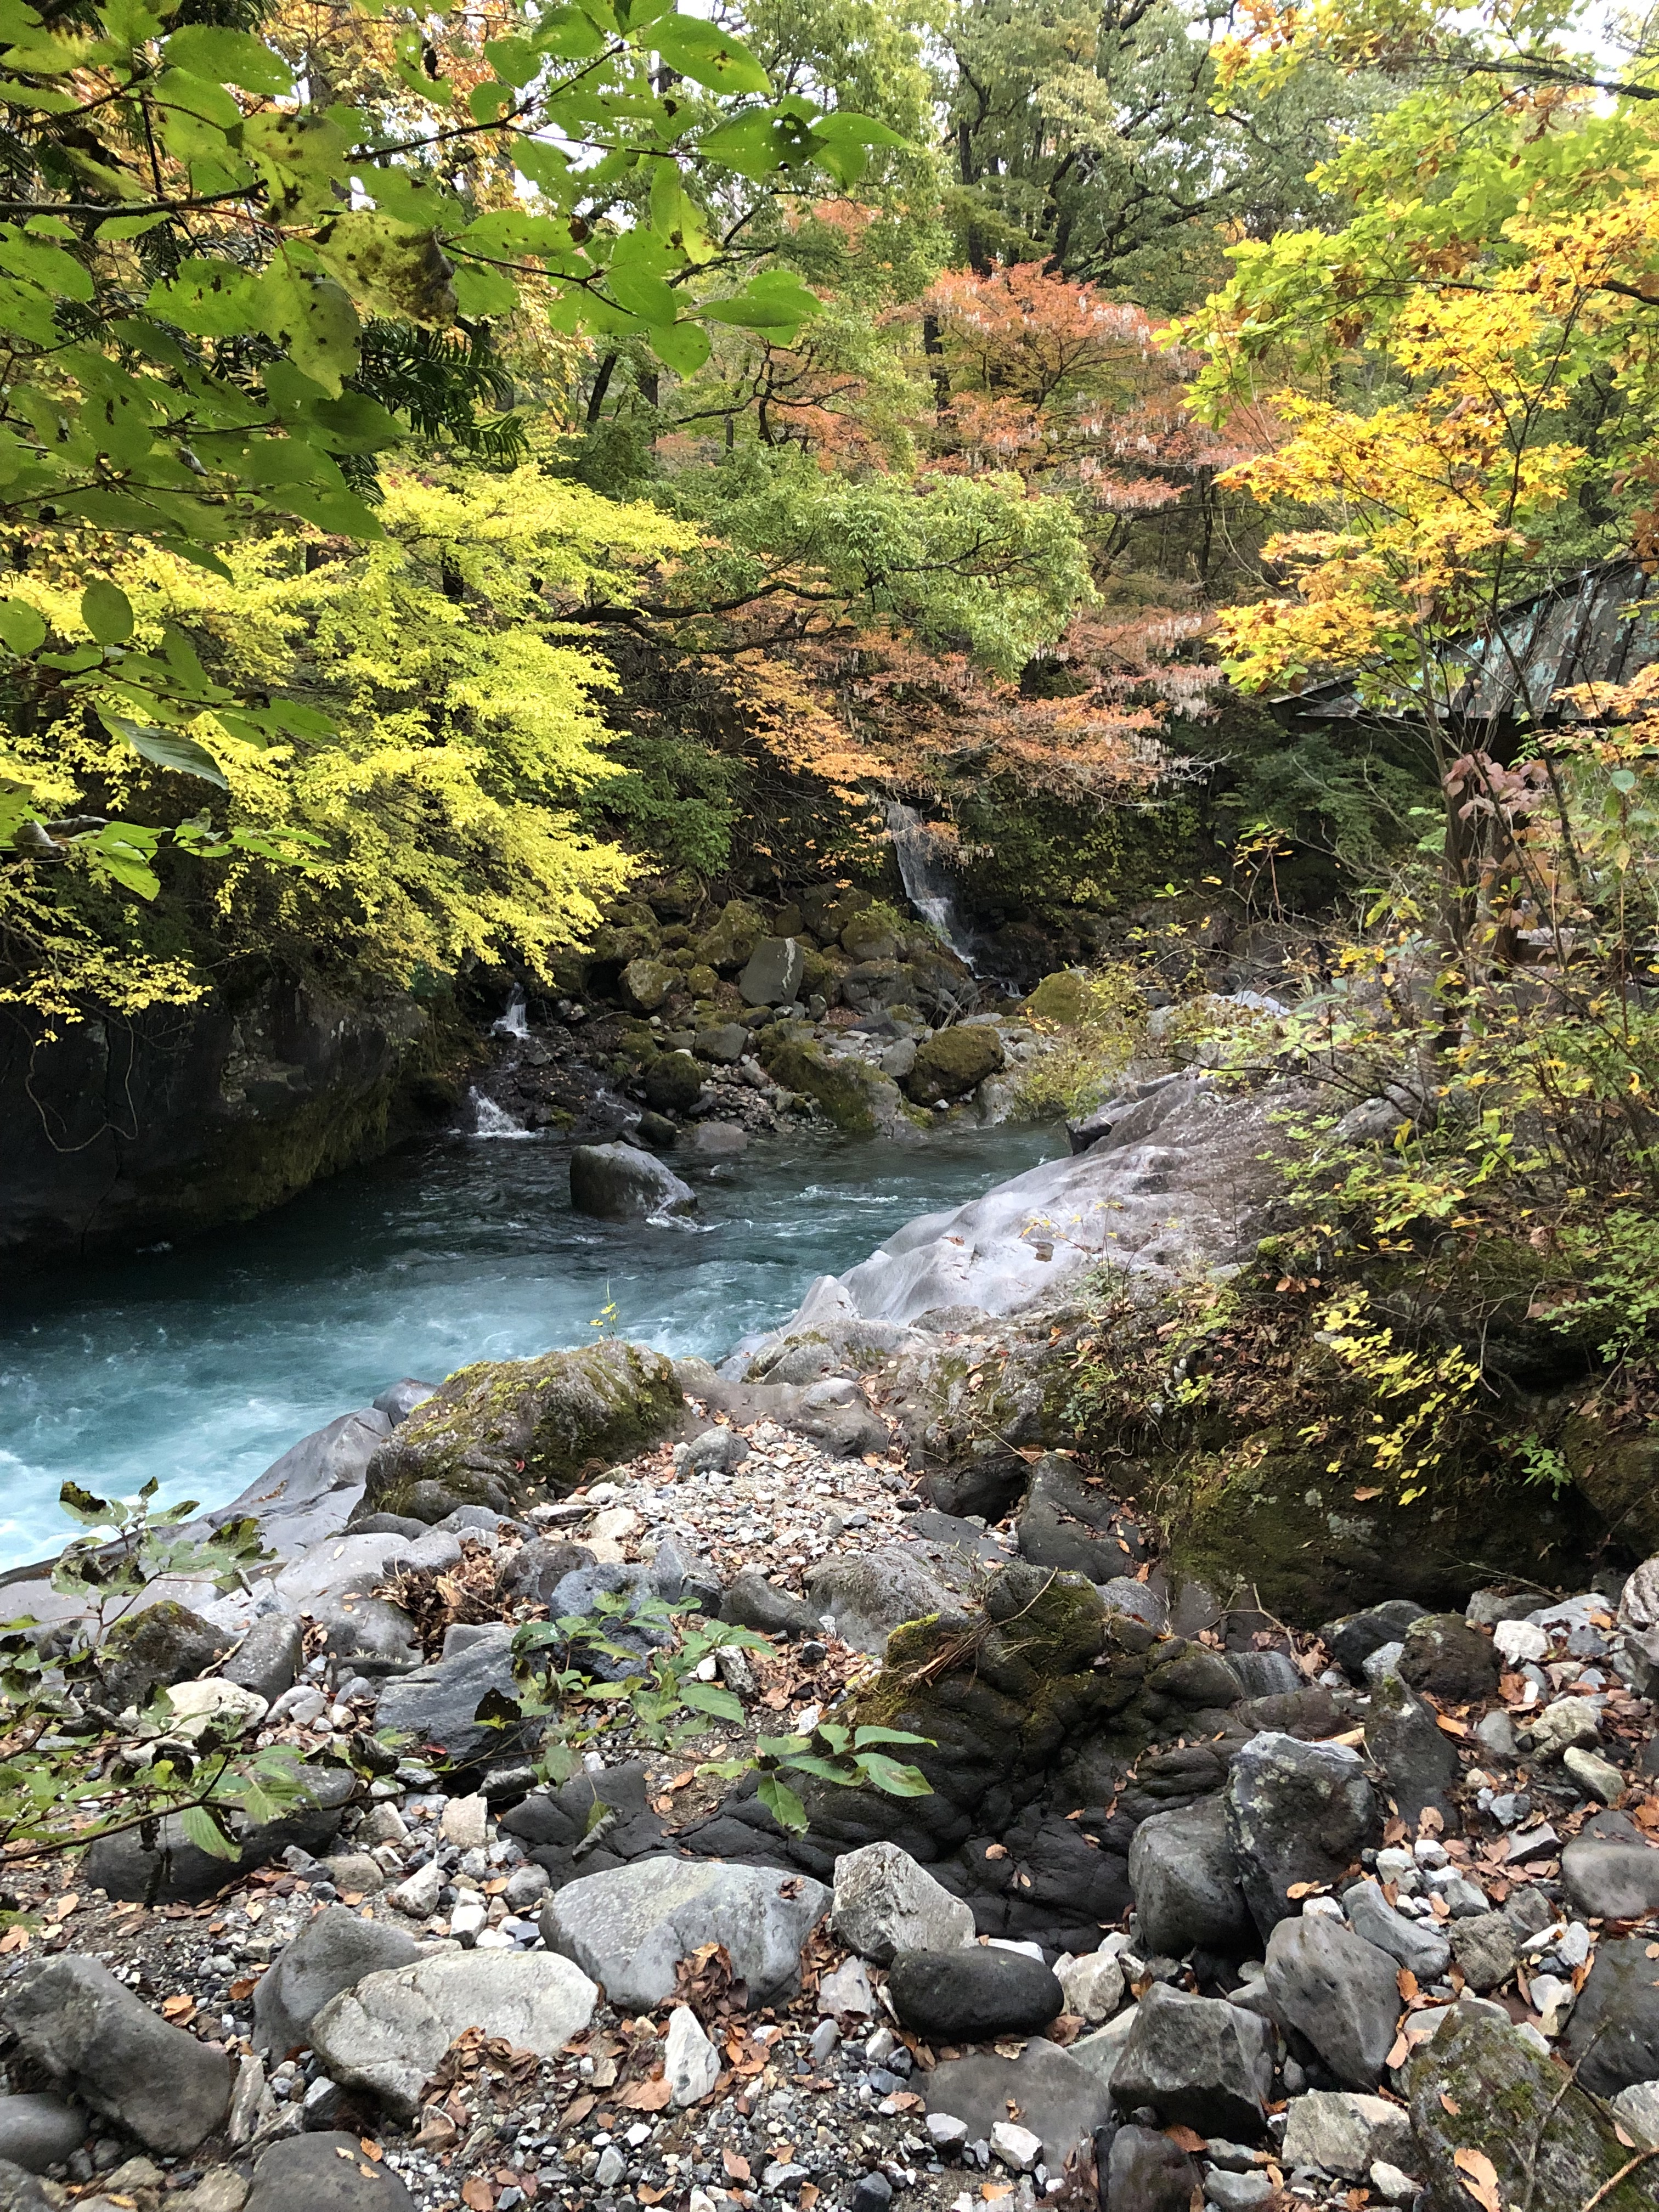 The rapidly flowing waters, running through the autumn leaved trees, with a rocky riverside area in the foreground. Nikko, Japan